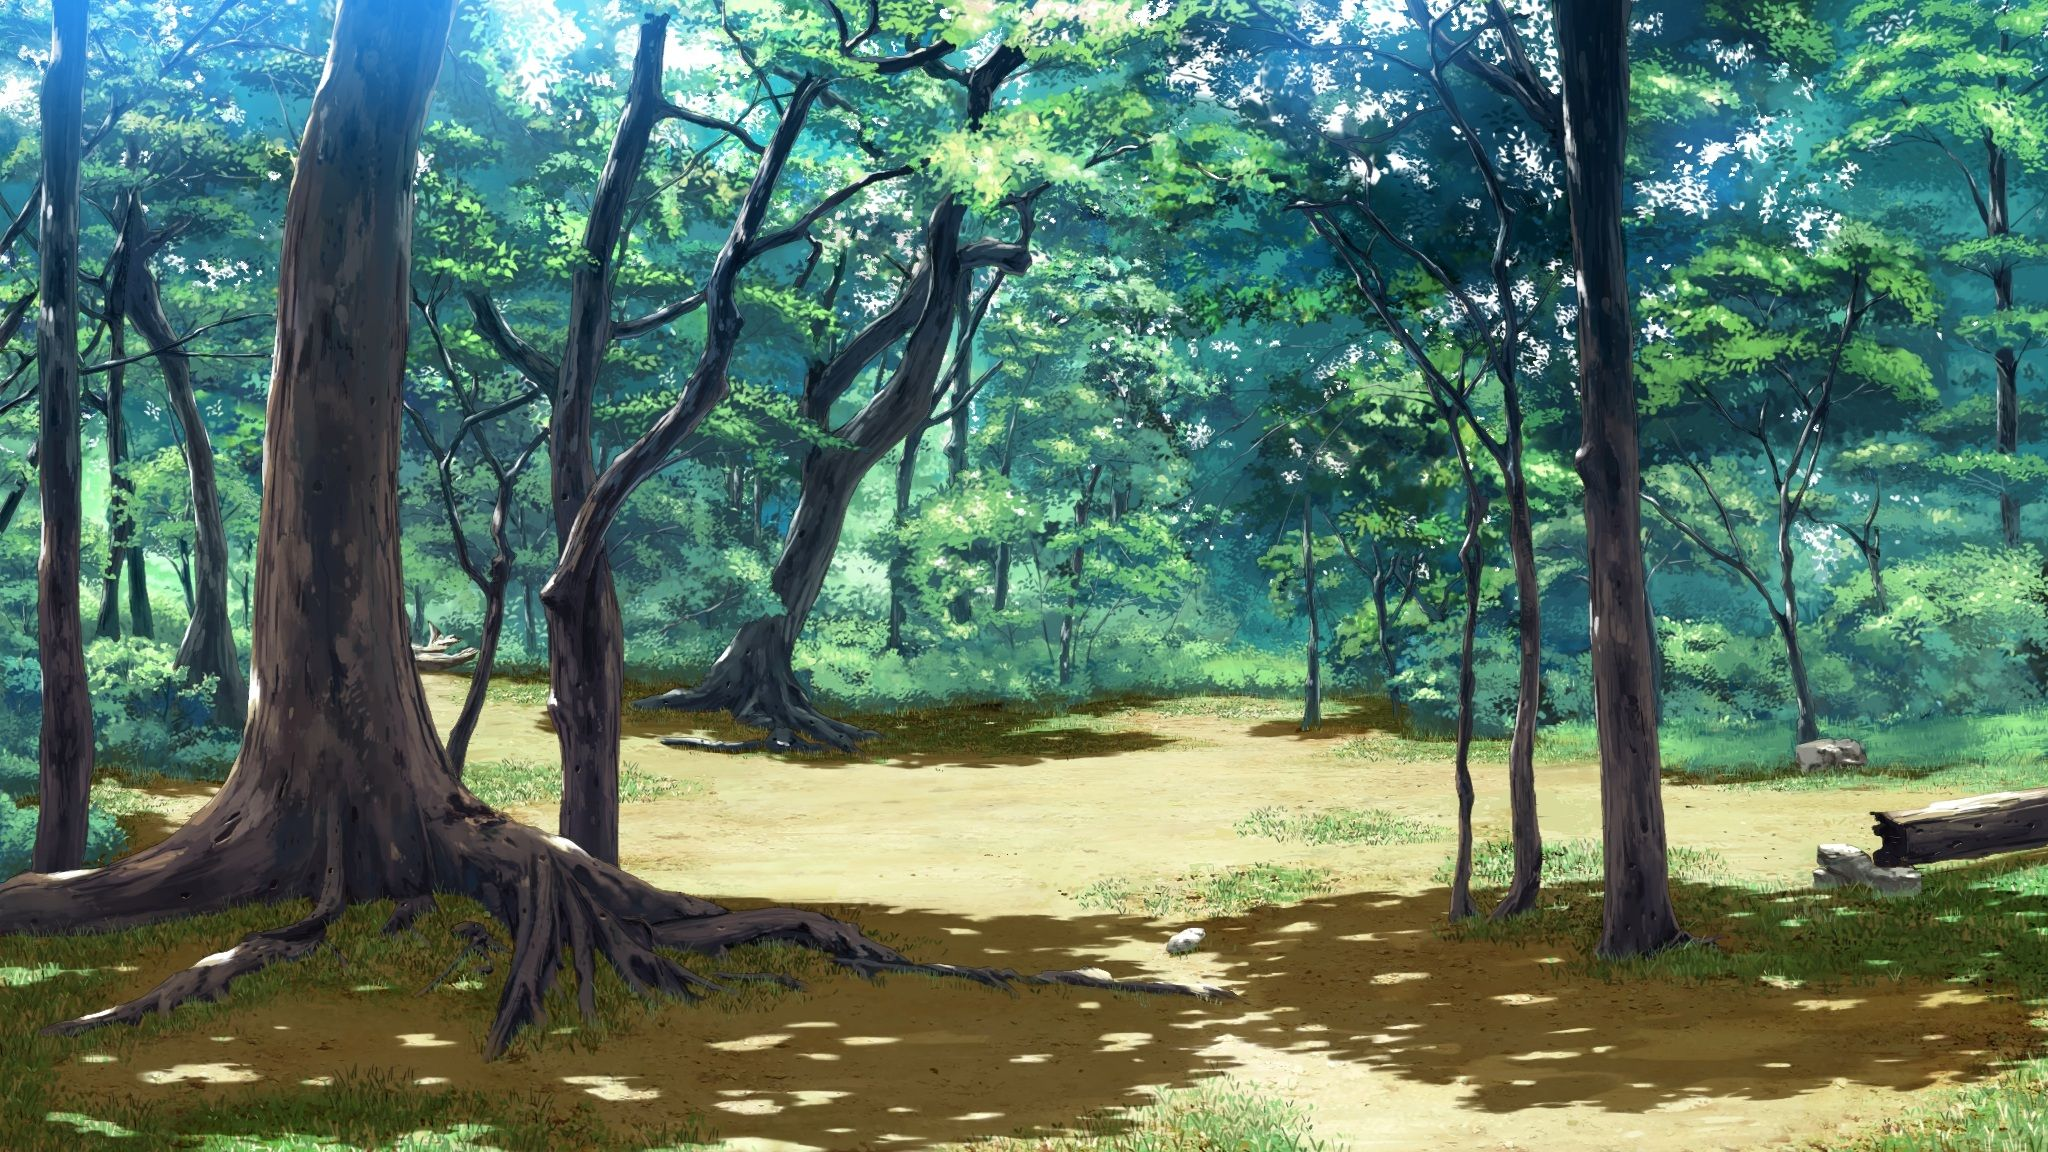 Forest nature anime scenery background wallpaper - Anime forest background ...